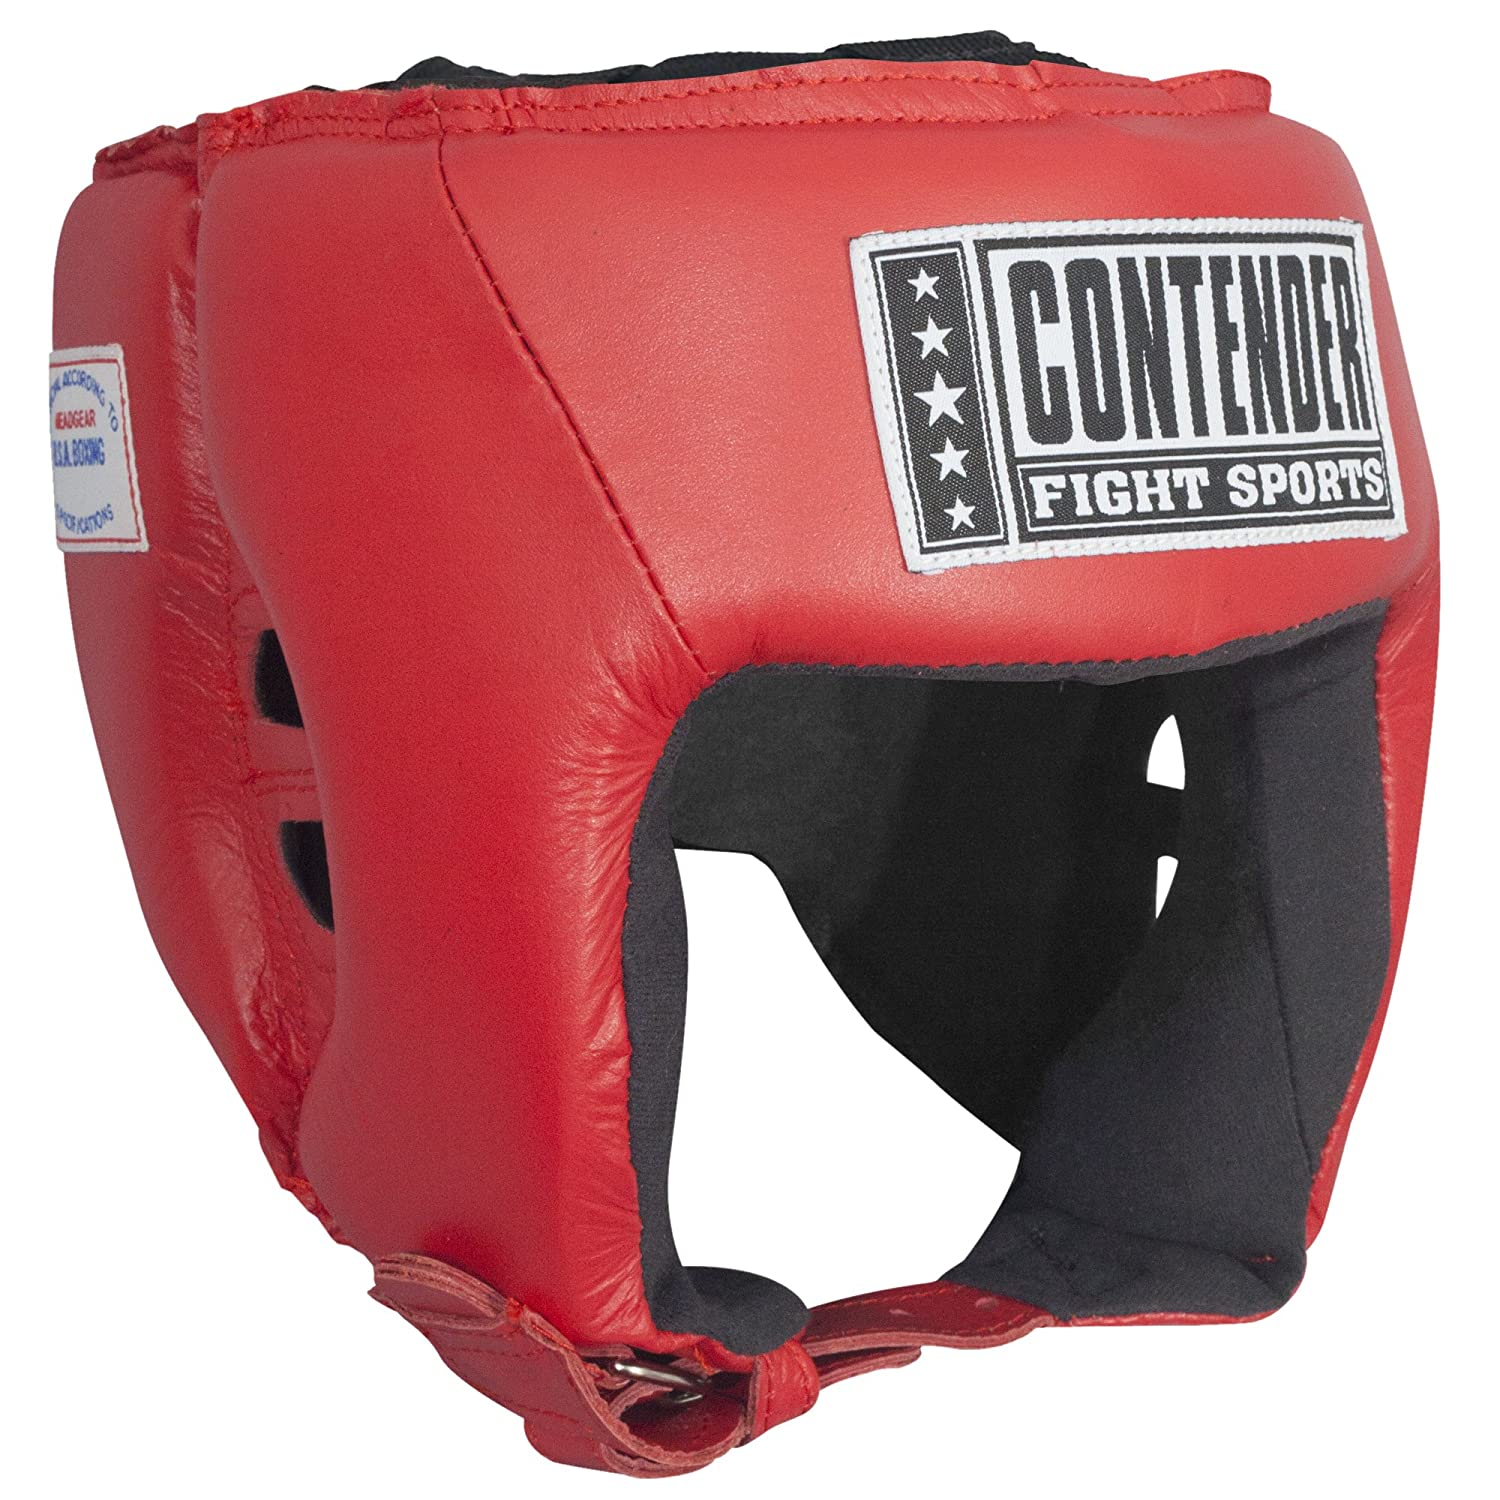 Contender Fight Contender Sports CompetitionボクシングムエタイMMAスパーリングヘッド保護Headgear レッド without Cheeks Large レッド Fight B00YU1PFFK, 田川郡:4f9ff3e8 --- capela.dominiotemporario.com